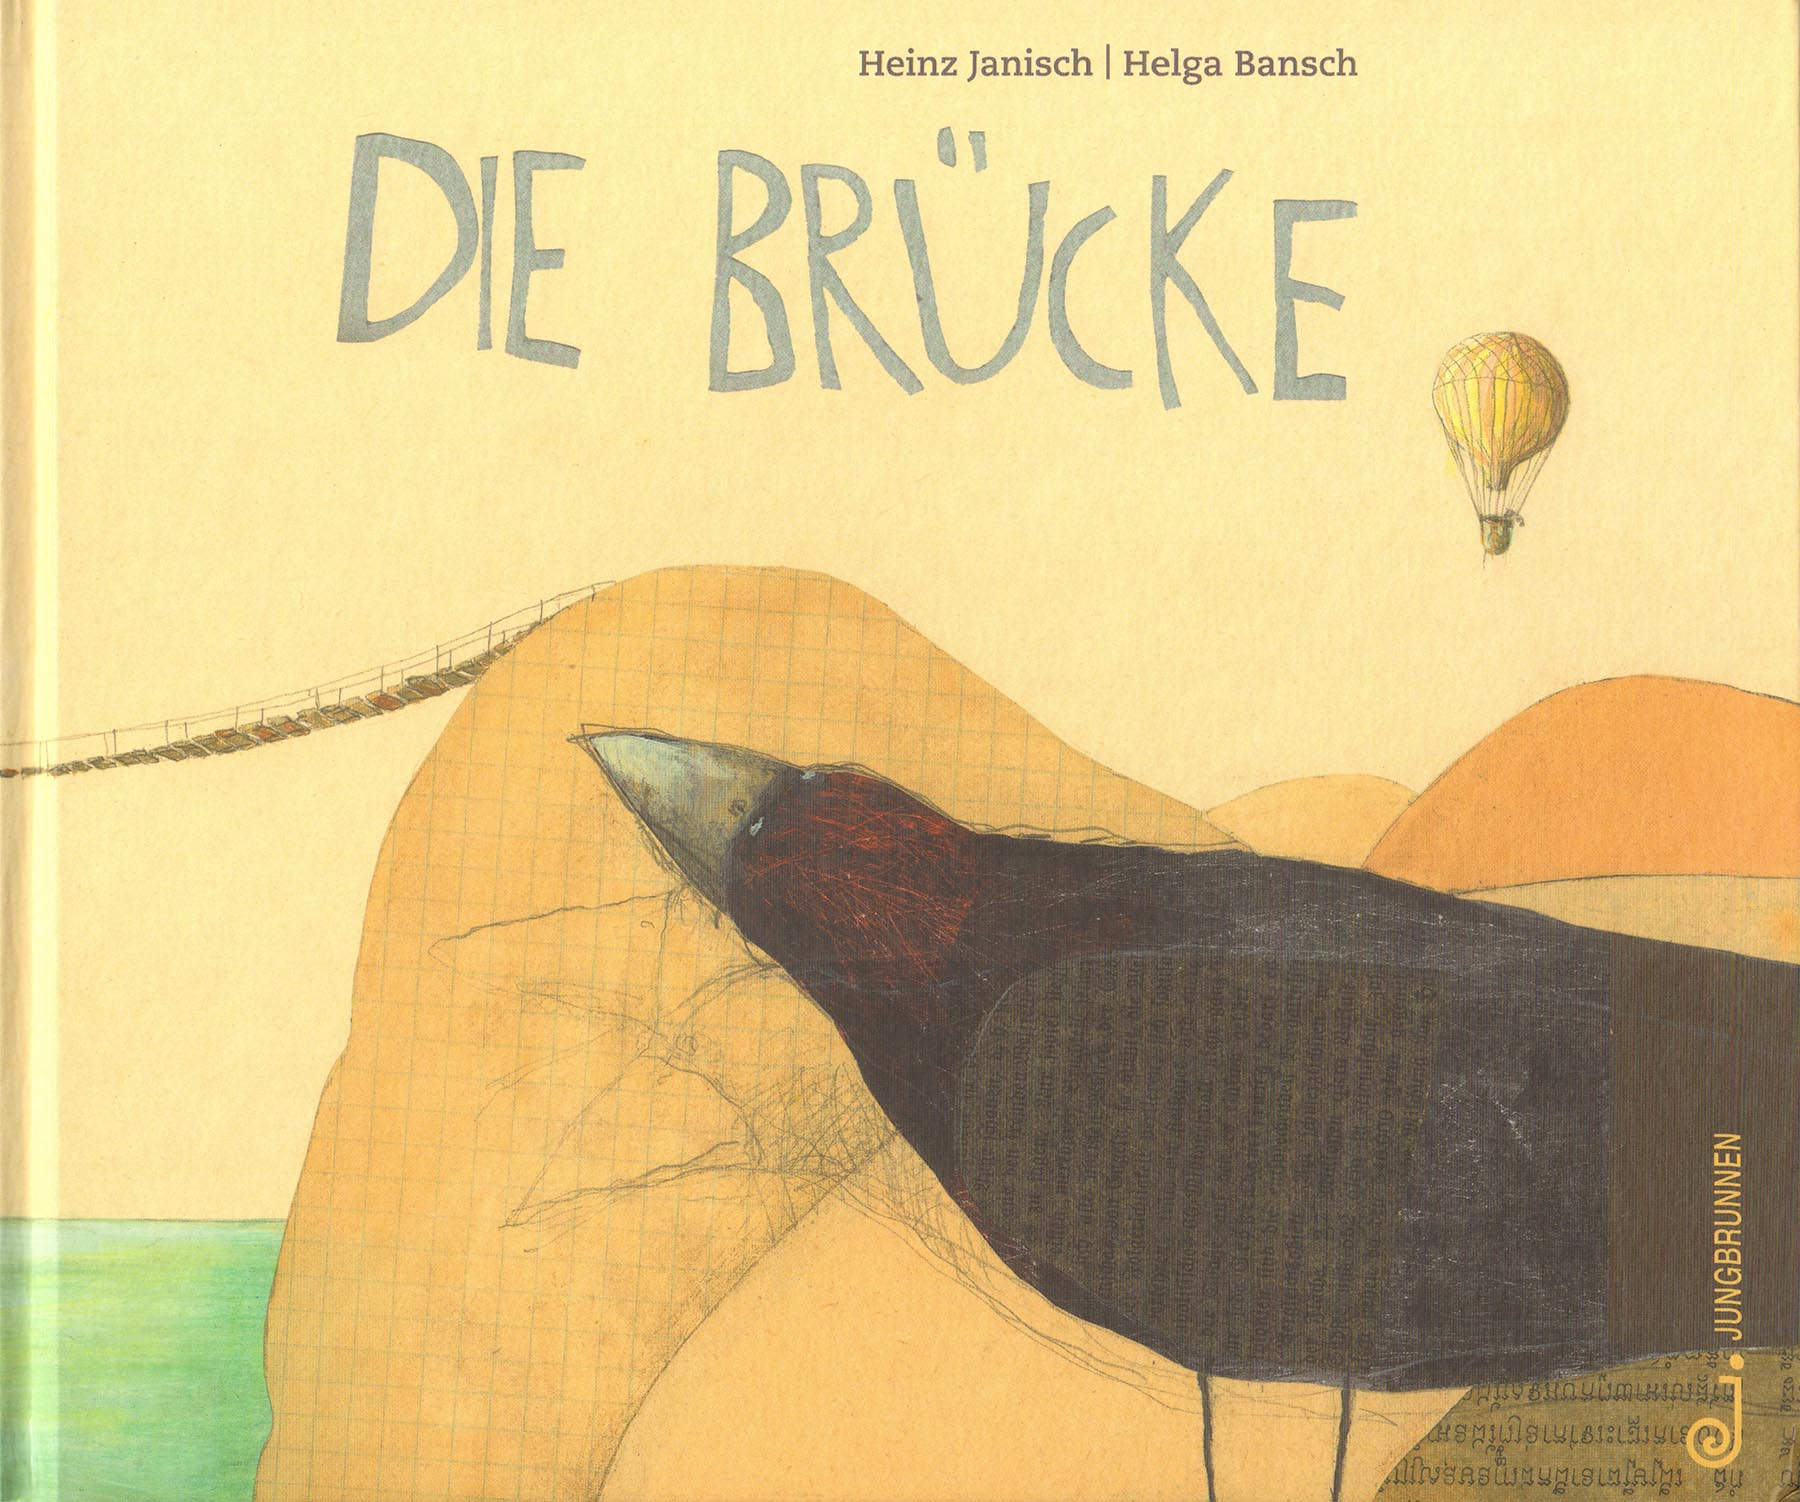 Cover from   The Bridge  , by Heinz Janisch, illustration by Helga Bansch